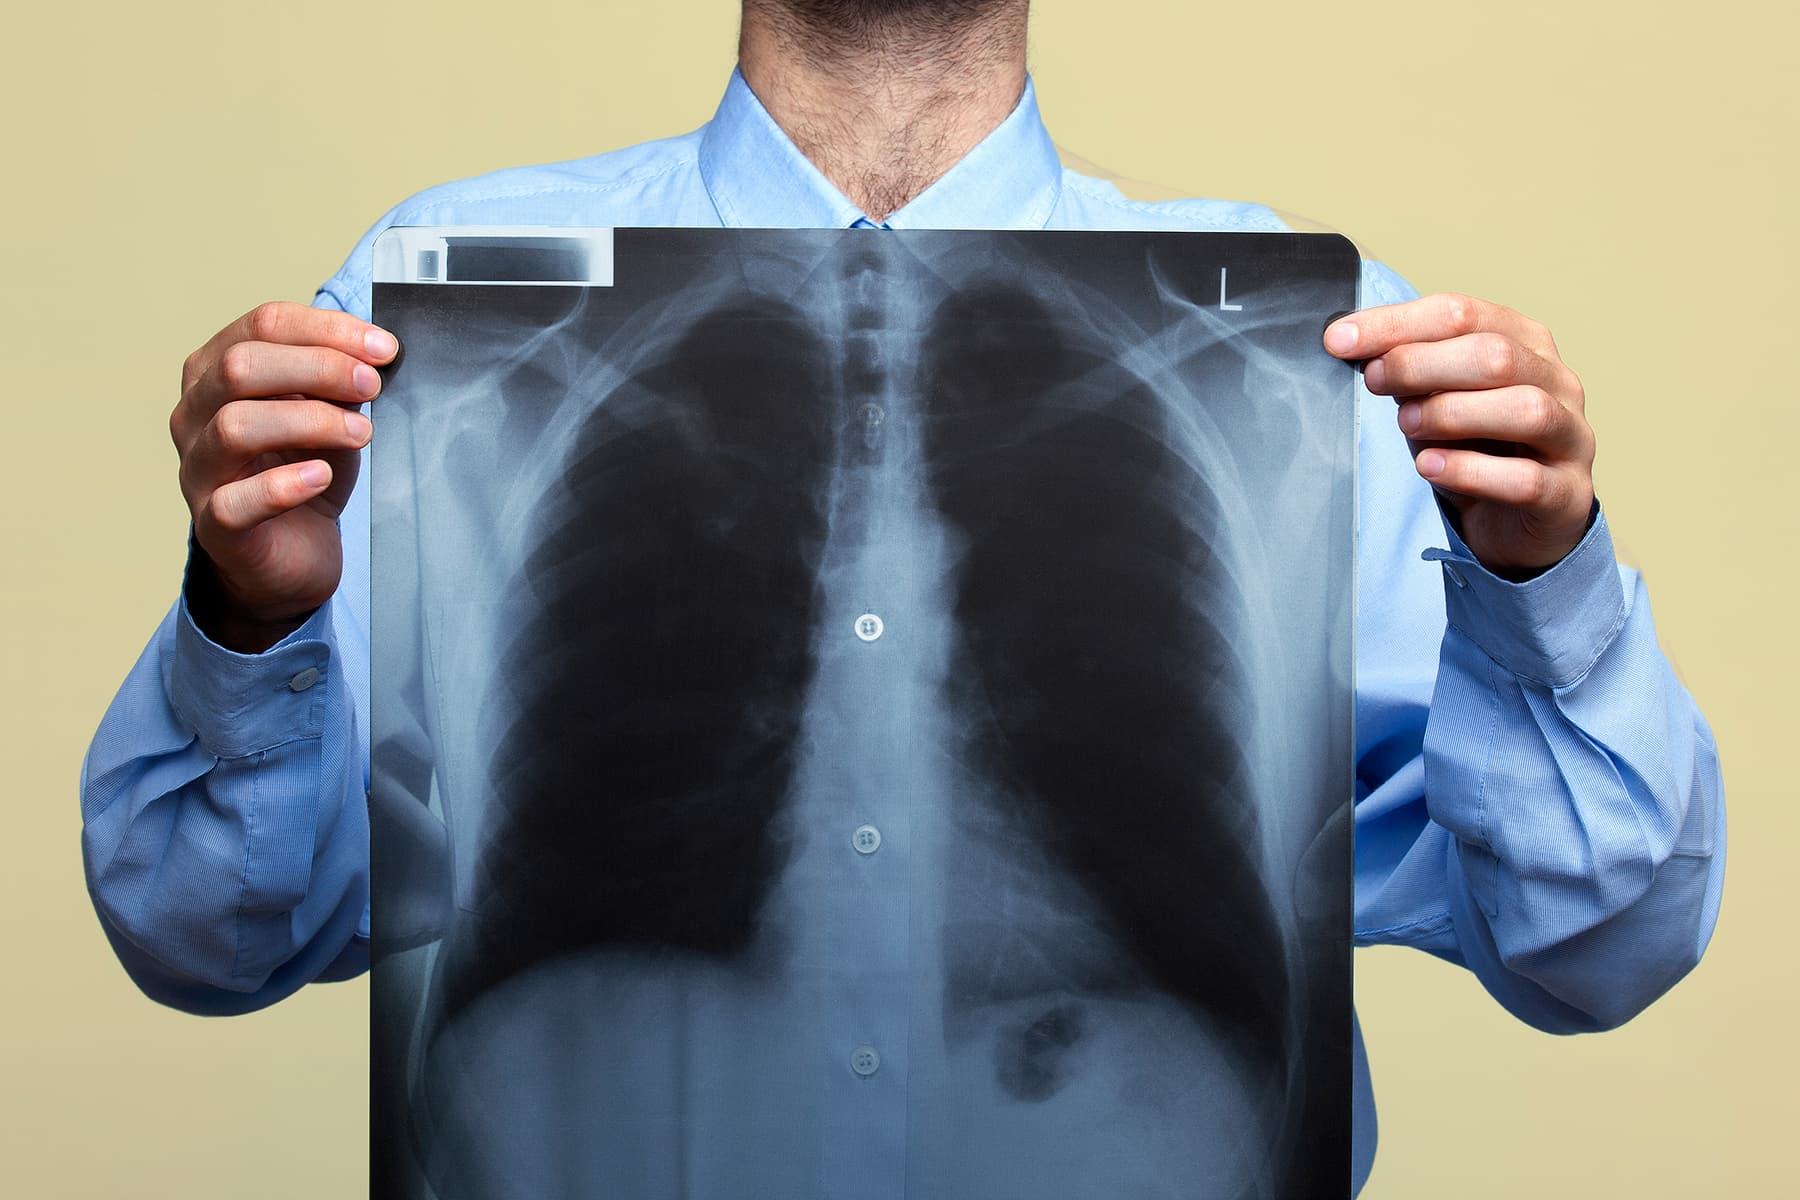 New Guidelines Could Double Number Eligible for Lung Cancer Screening  - web md